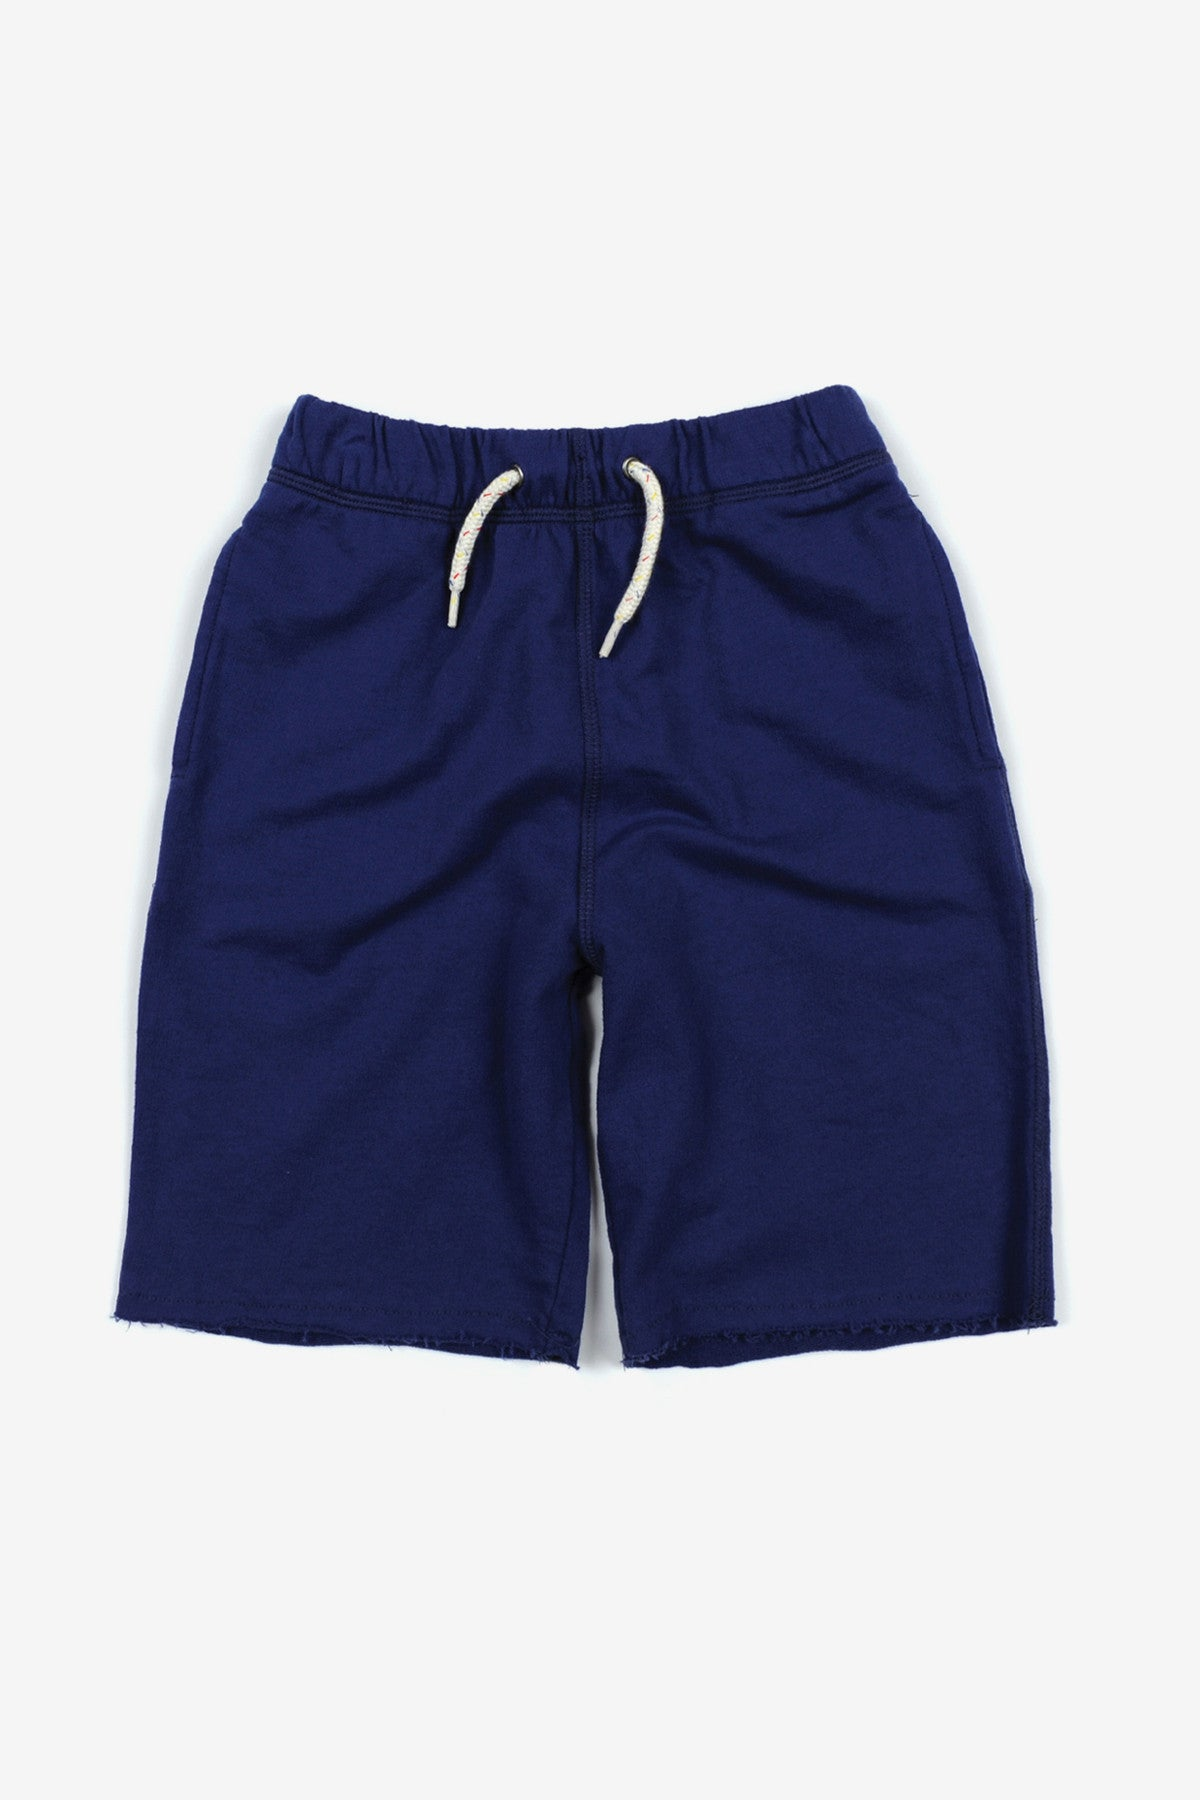 Appaman Camp Boys Shorts - Deep Cobalt